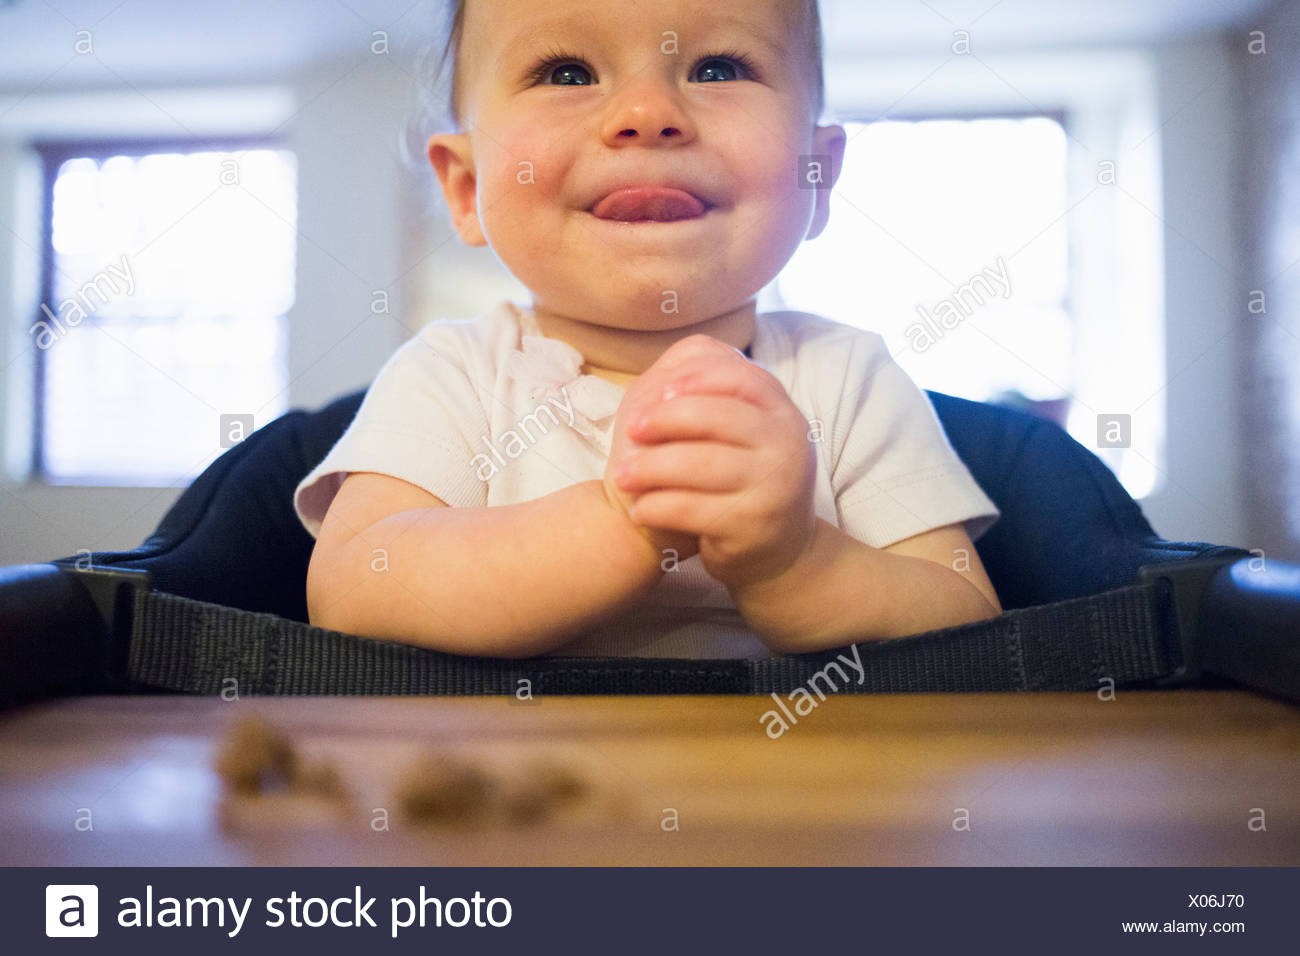 Toddler girl licking lips in highchair - Stock Image